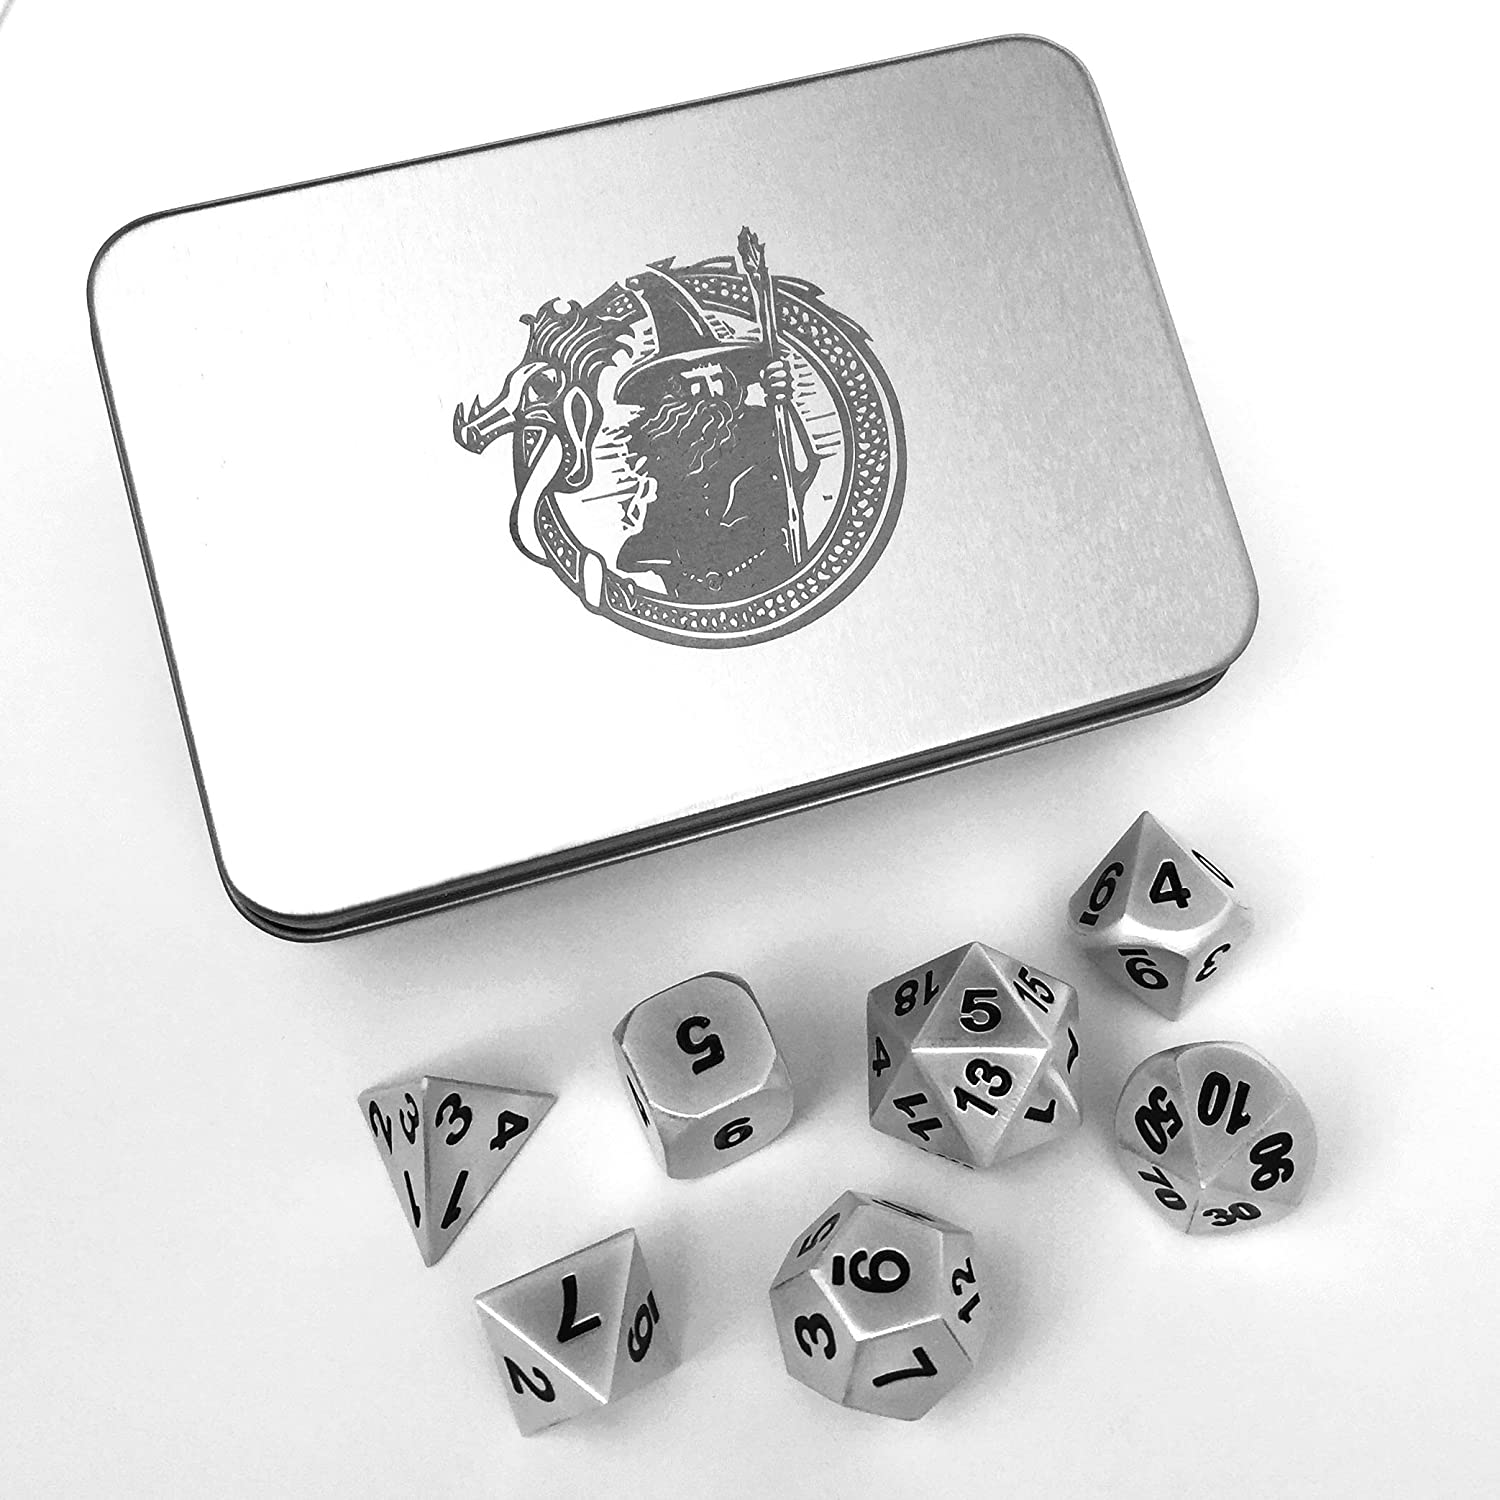 Amazon.com: DragonSteel Solid Metal Polyhedral 7 Die Du0026D Dice Set With Case  | For Tabletop D20 RPGs Like DnD And Pathfinder Roleplaying Game, Board  Games, ...